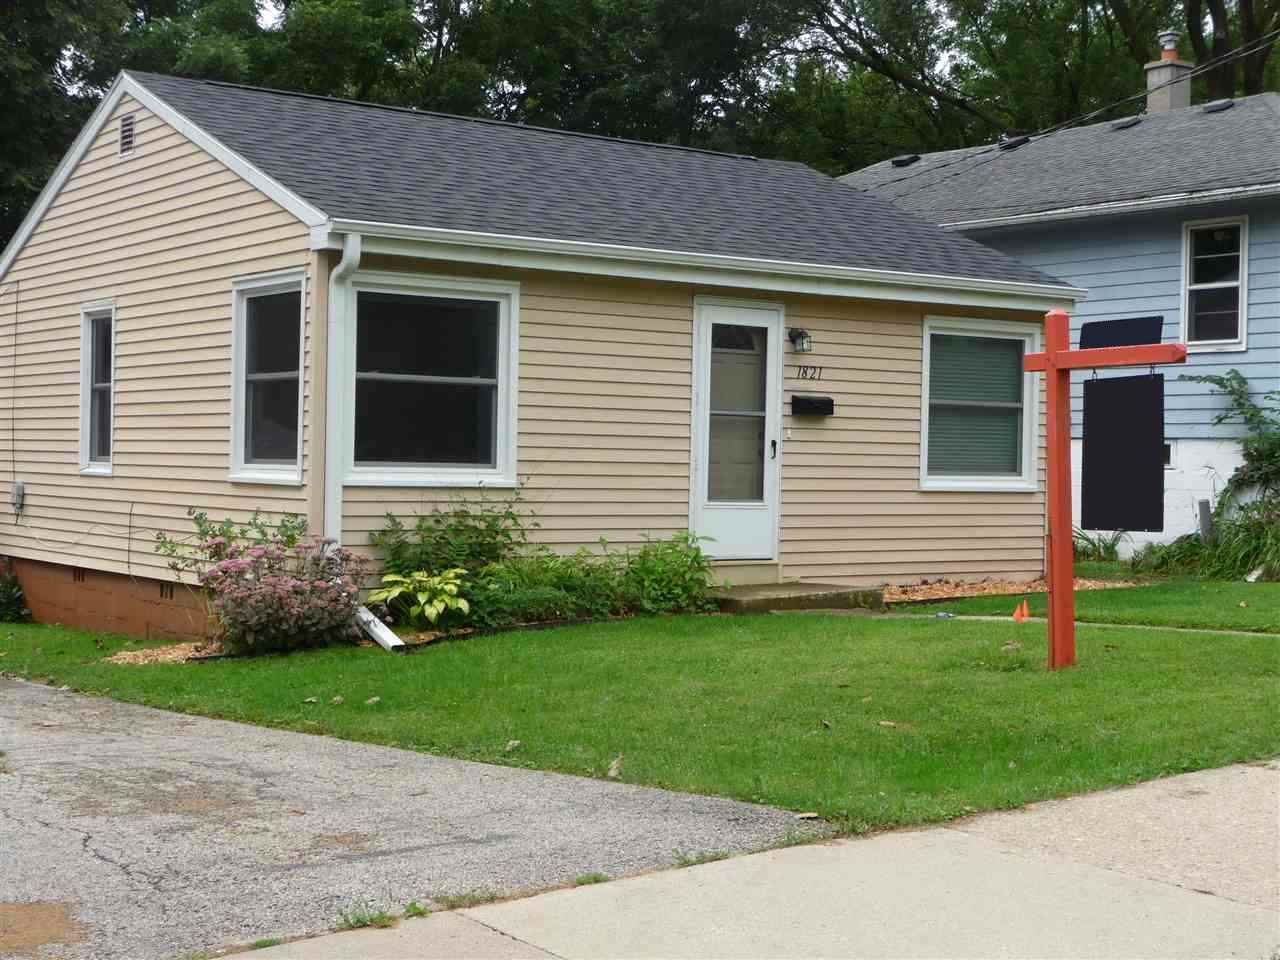 1821 Schlimgen Ave, Madison, WI 53704 - MLS#: 1867840